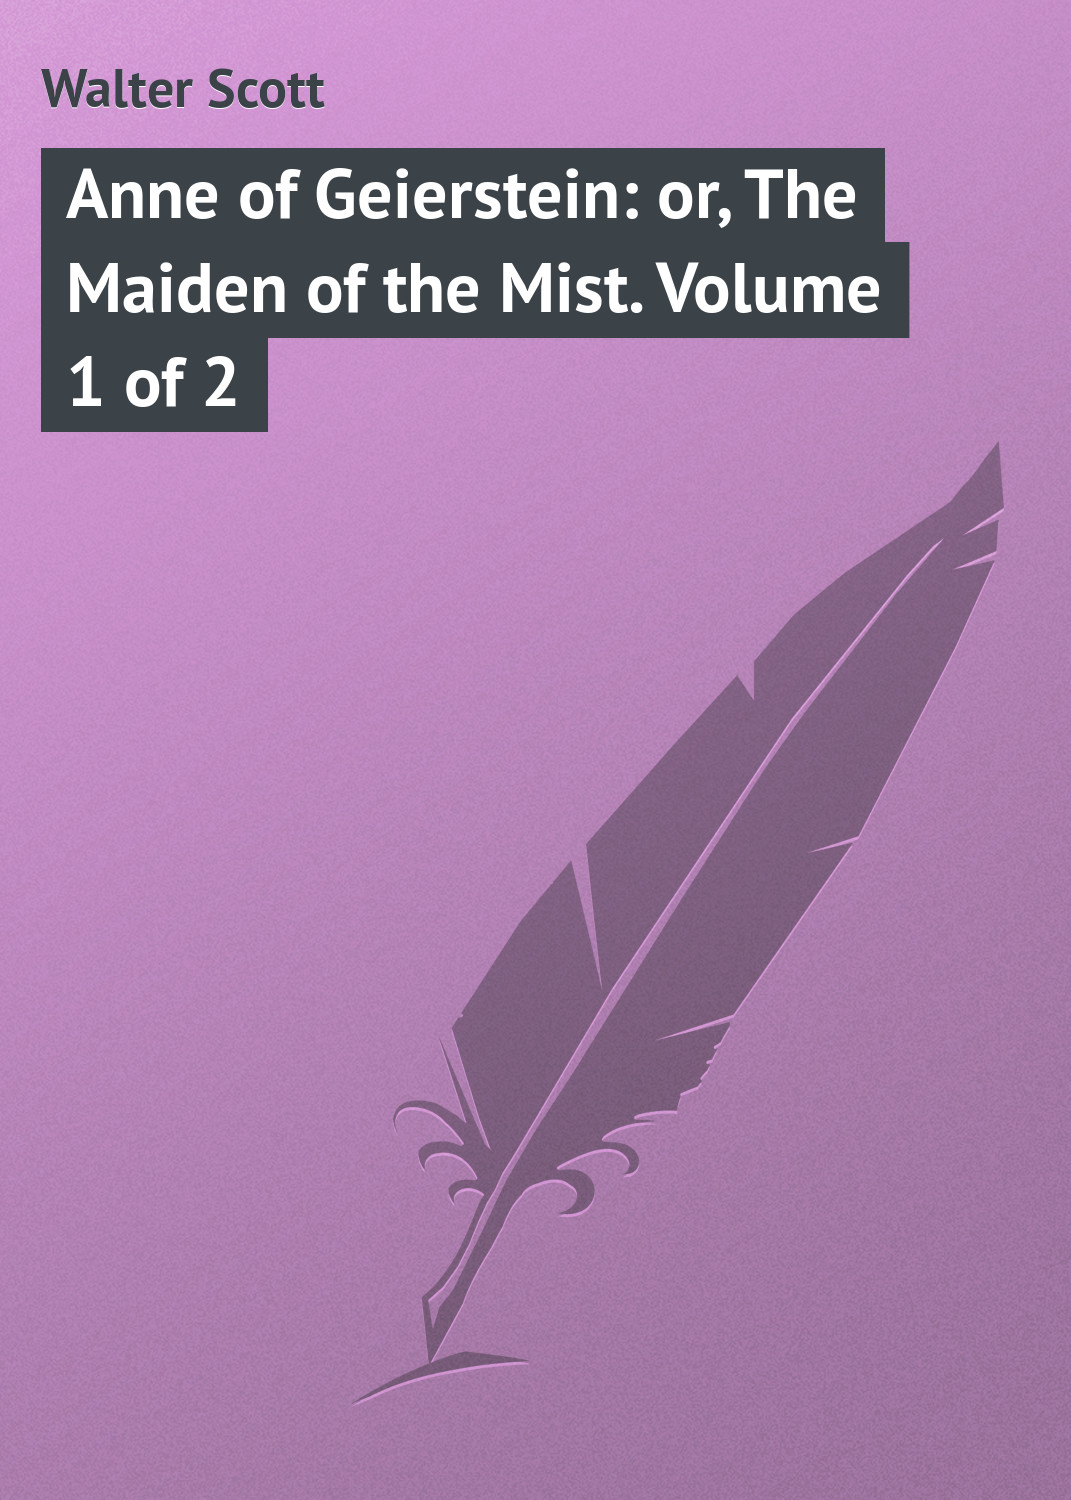 лучшая цена Walter Scott Anne of Geierstein: or, The Maiden of the Mist. Volume 1 of 2